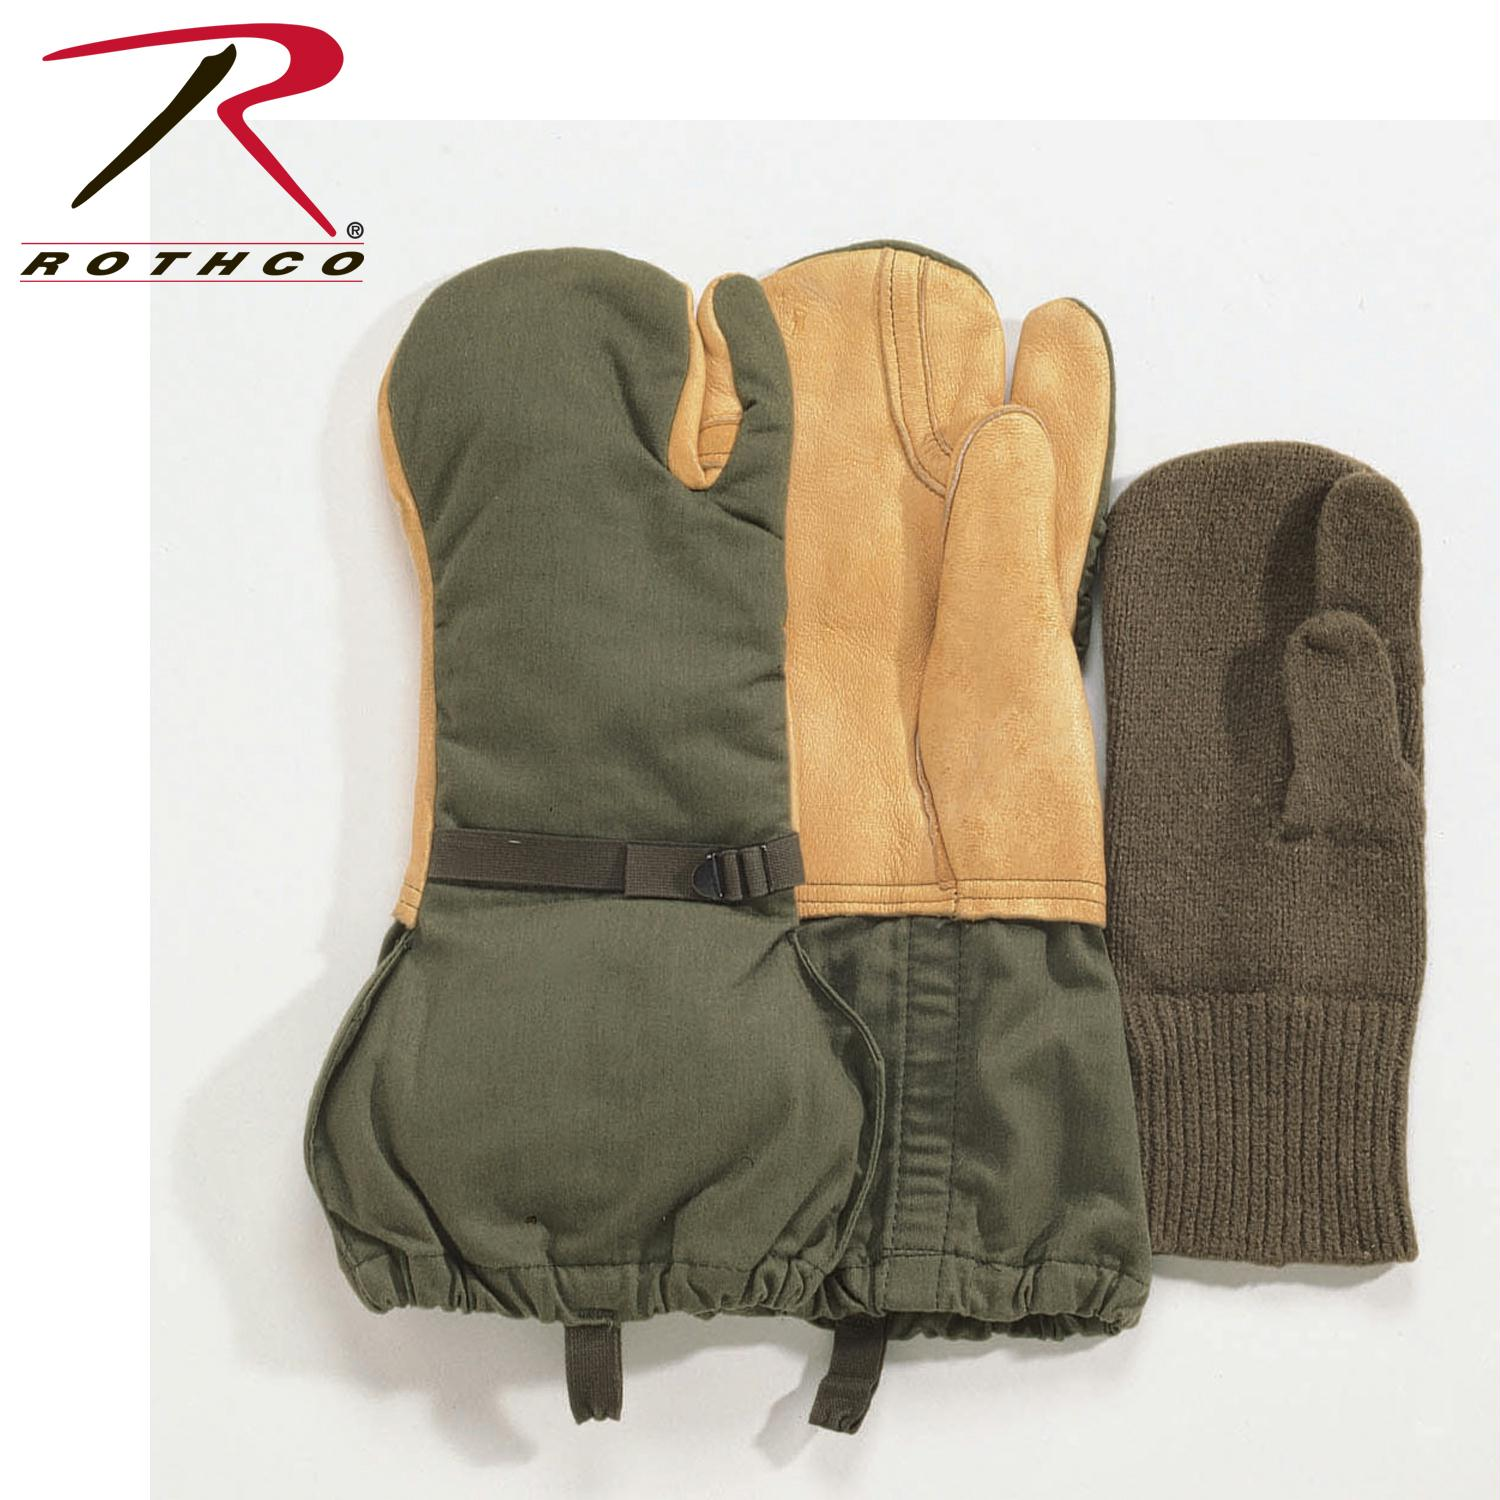 Rothco G.I. Leather Trigger Finger Mittens - M